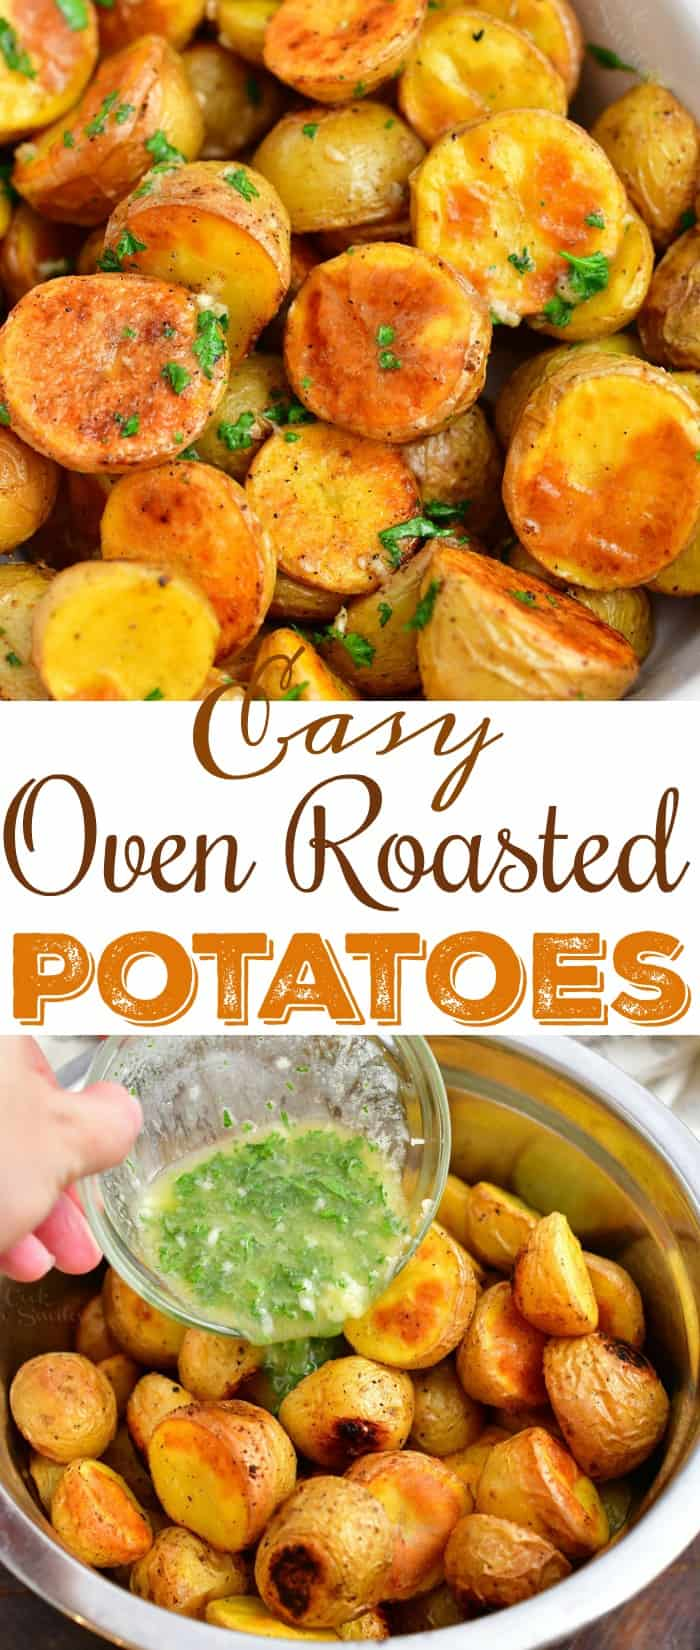 Titled photo (and shown): Cozy Oven Roasted Potatoes